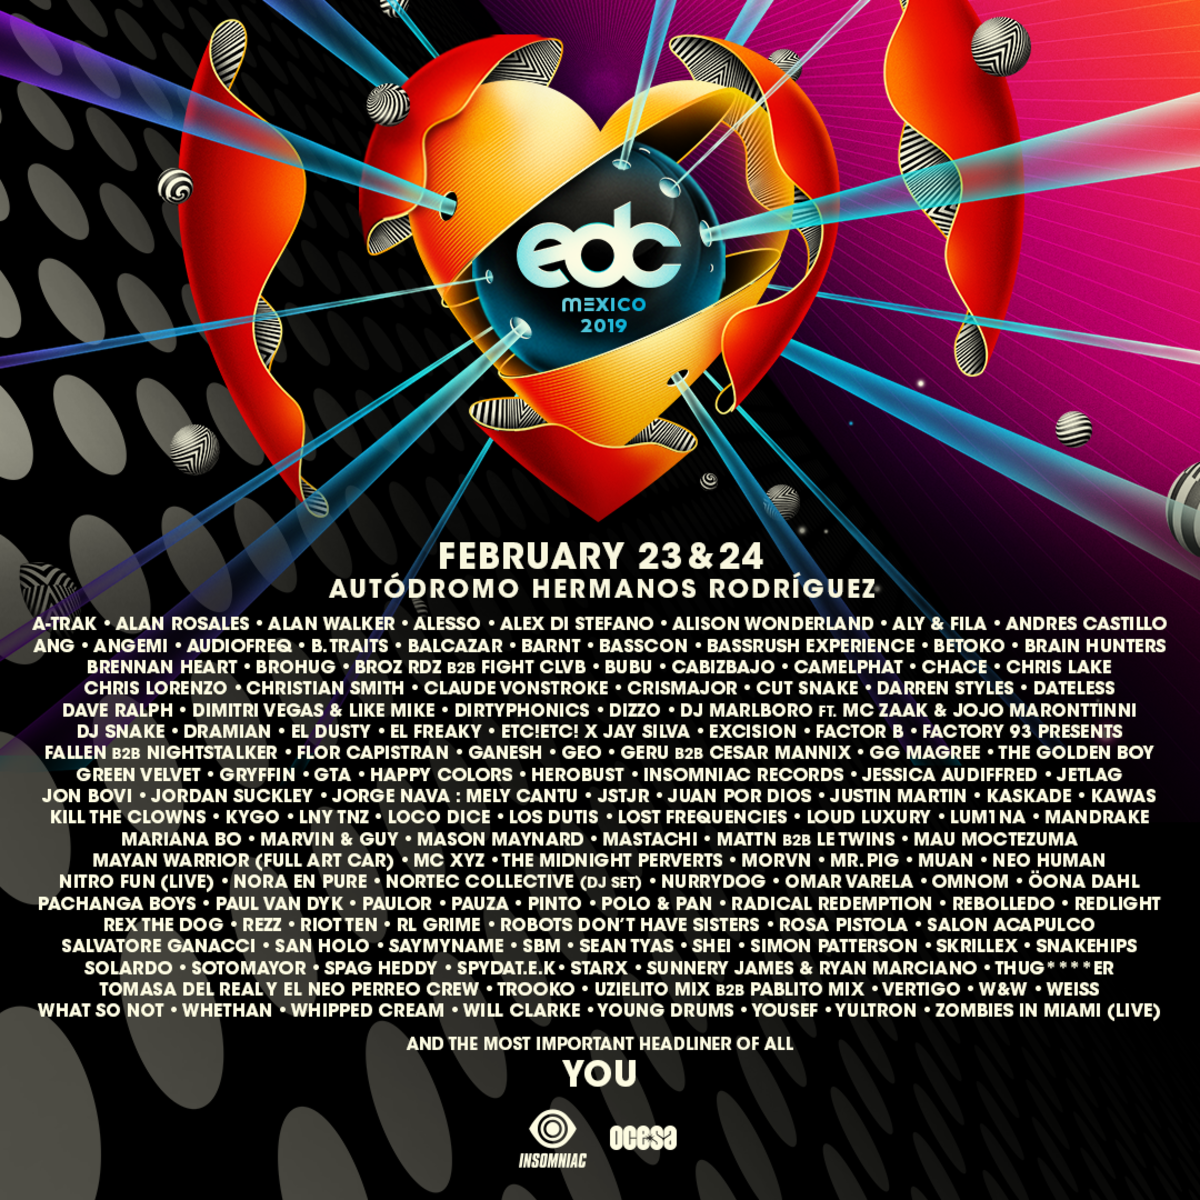 edc_mexico_2019_lineup_assets_general_1080x1080_r01